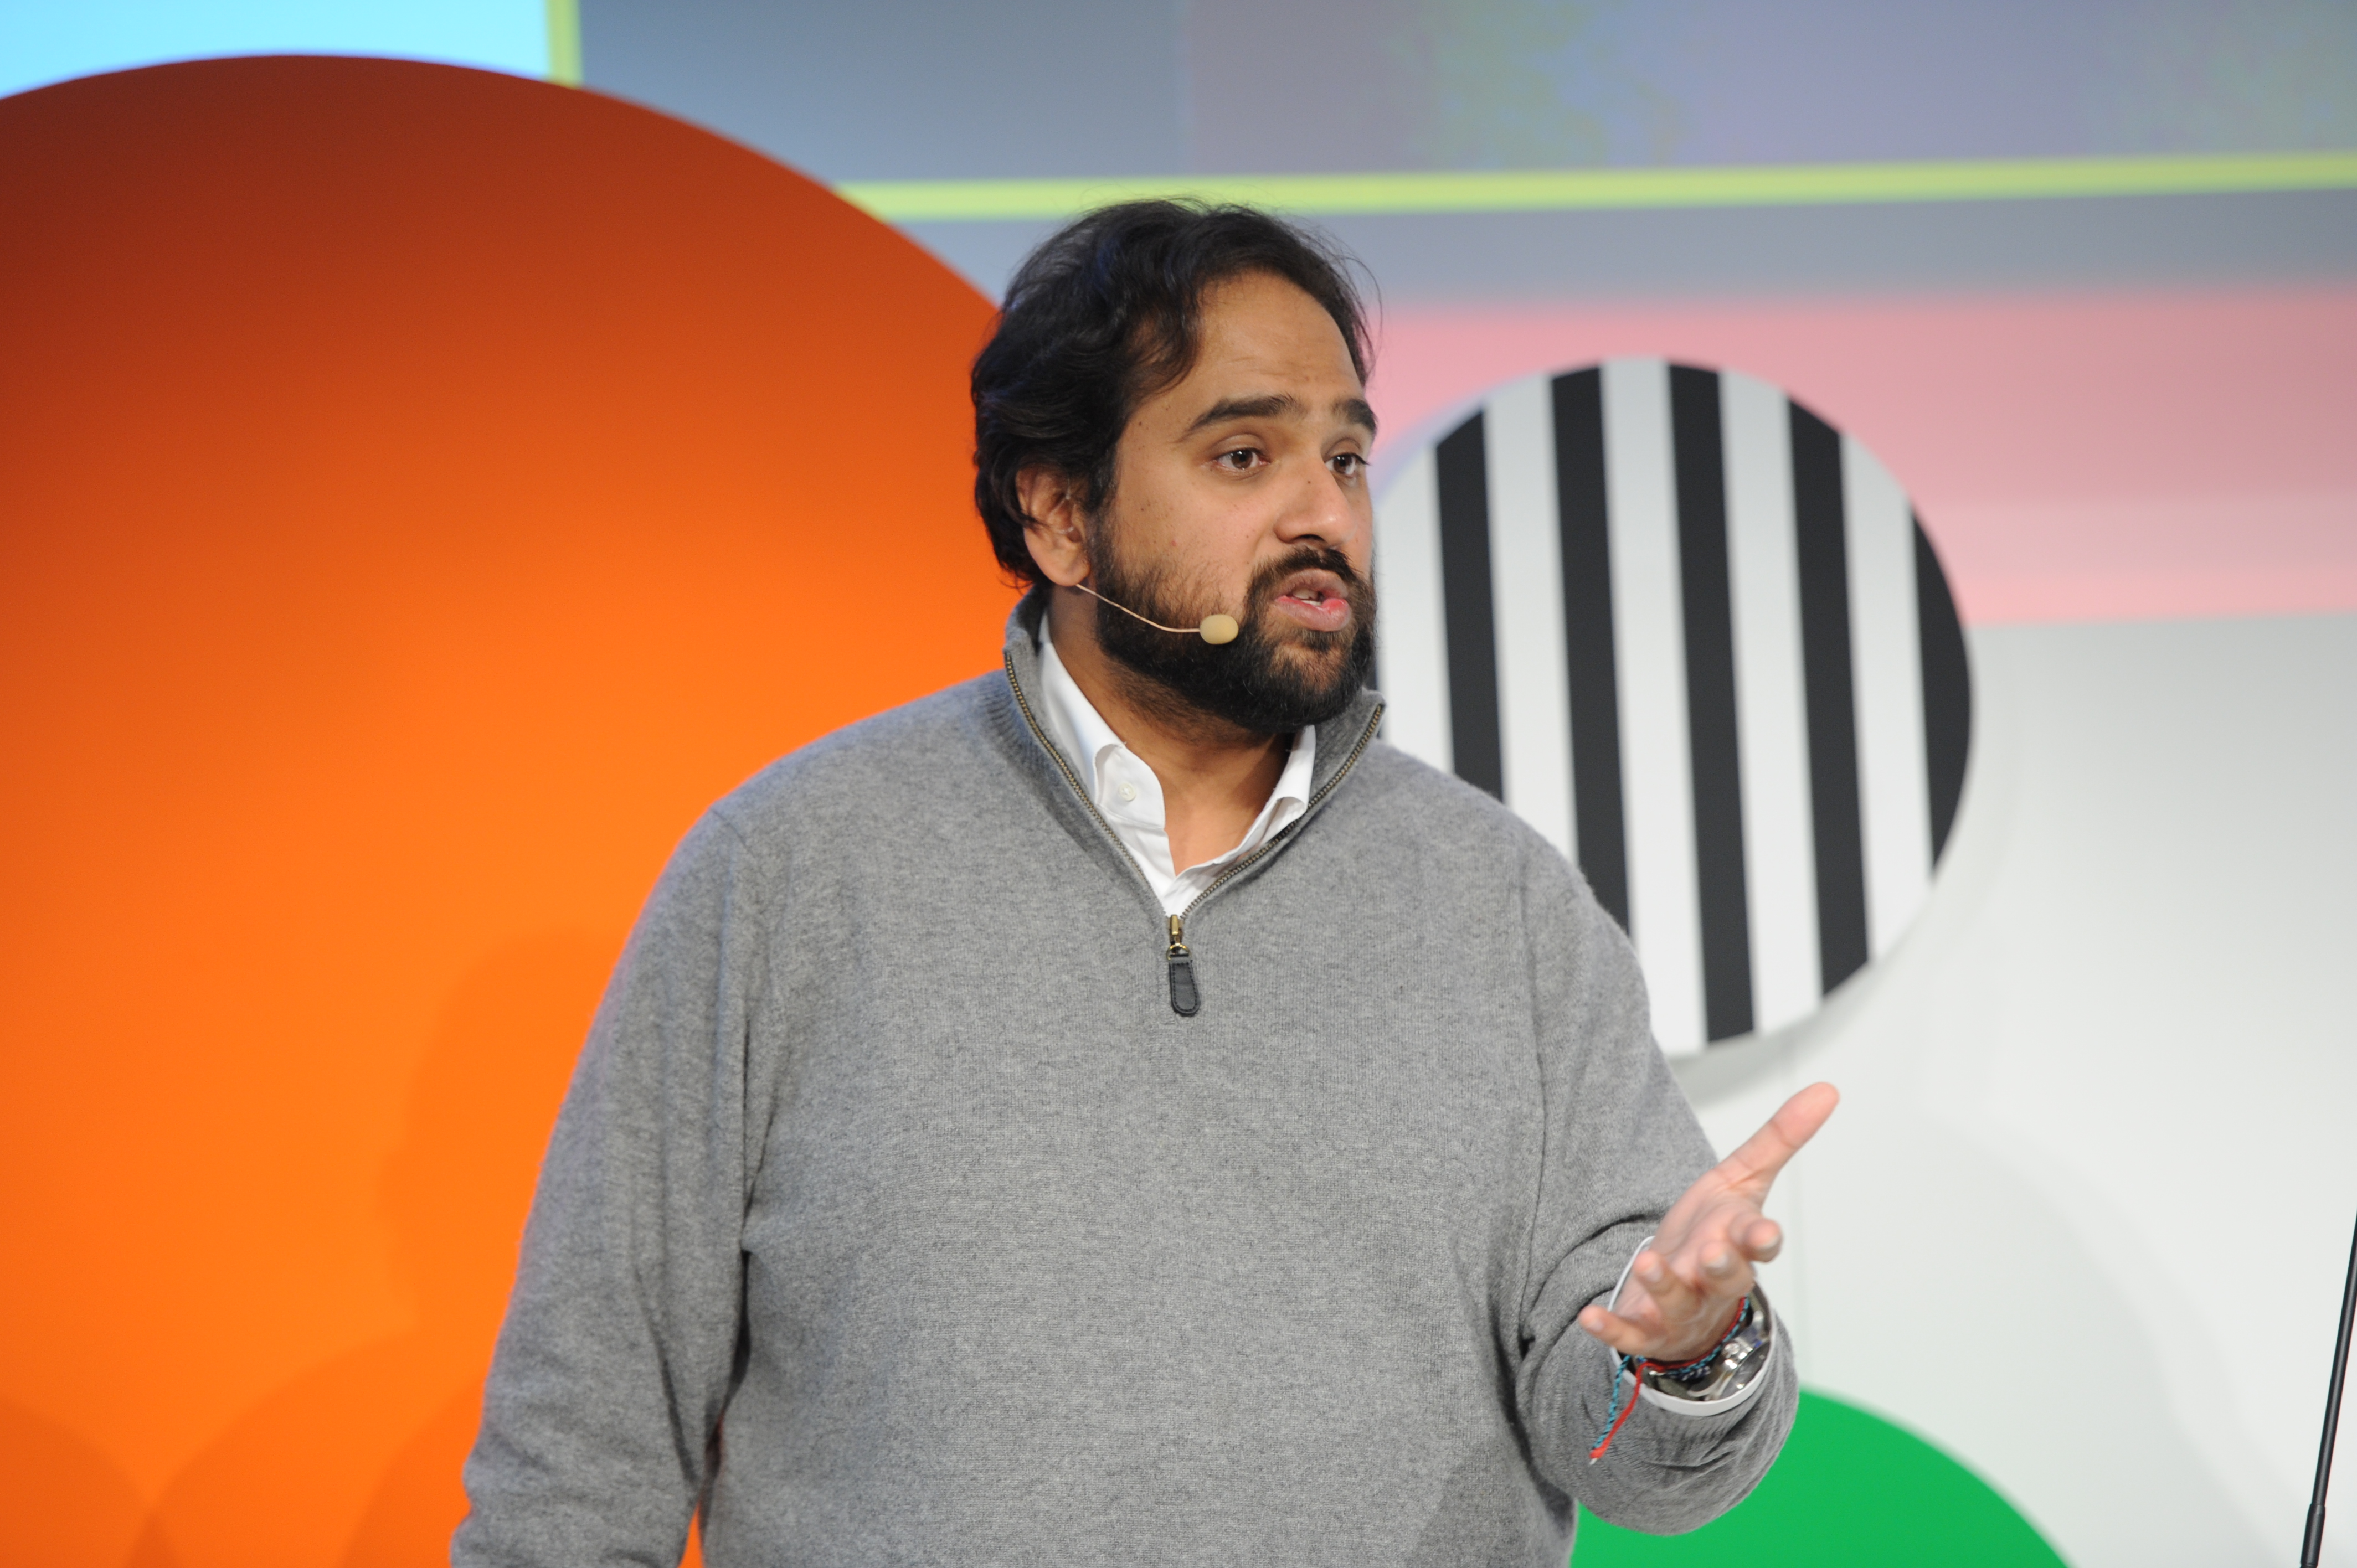 Jawbone CEO Hosian Rahman gestures on the podium during the Digital Life Design (DLD) Conference at the HVB Forum on January 21, 2014 in Munich, Germany.